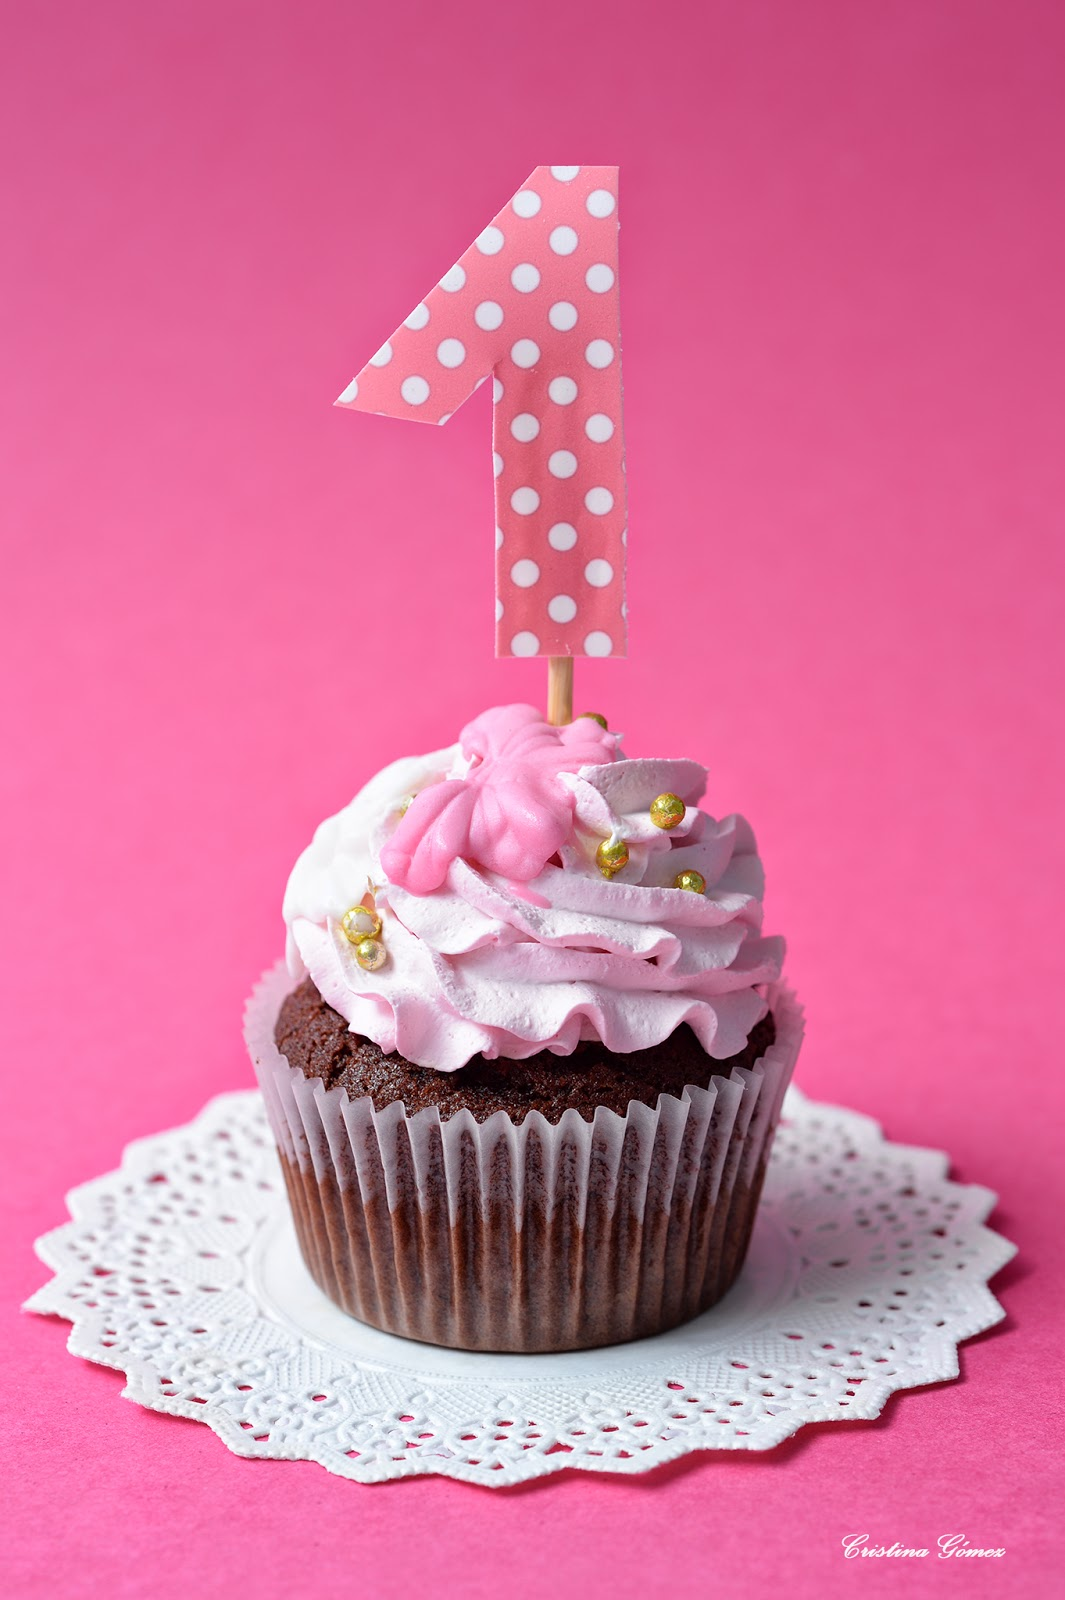 Happy Birthday Blog! (+ blogging tips)